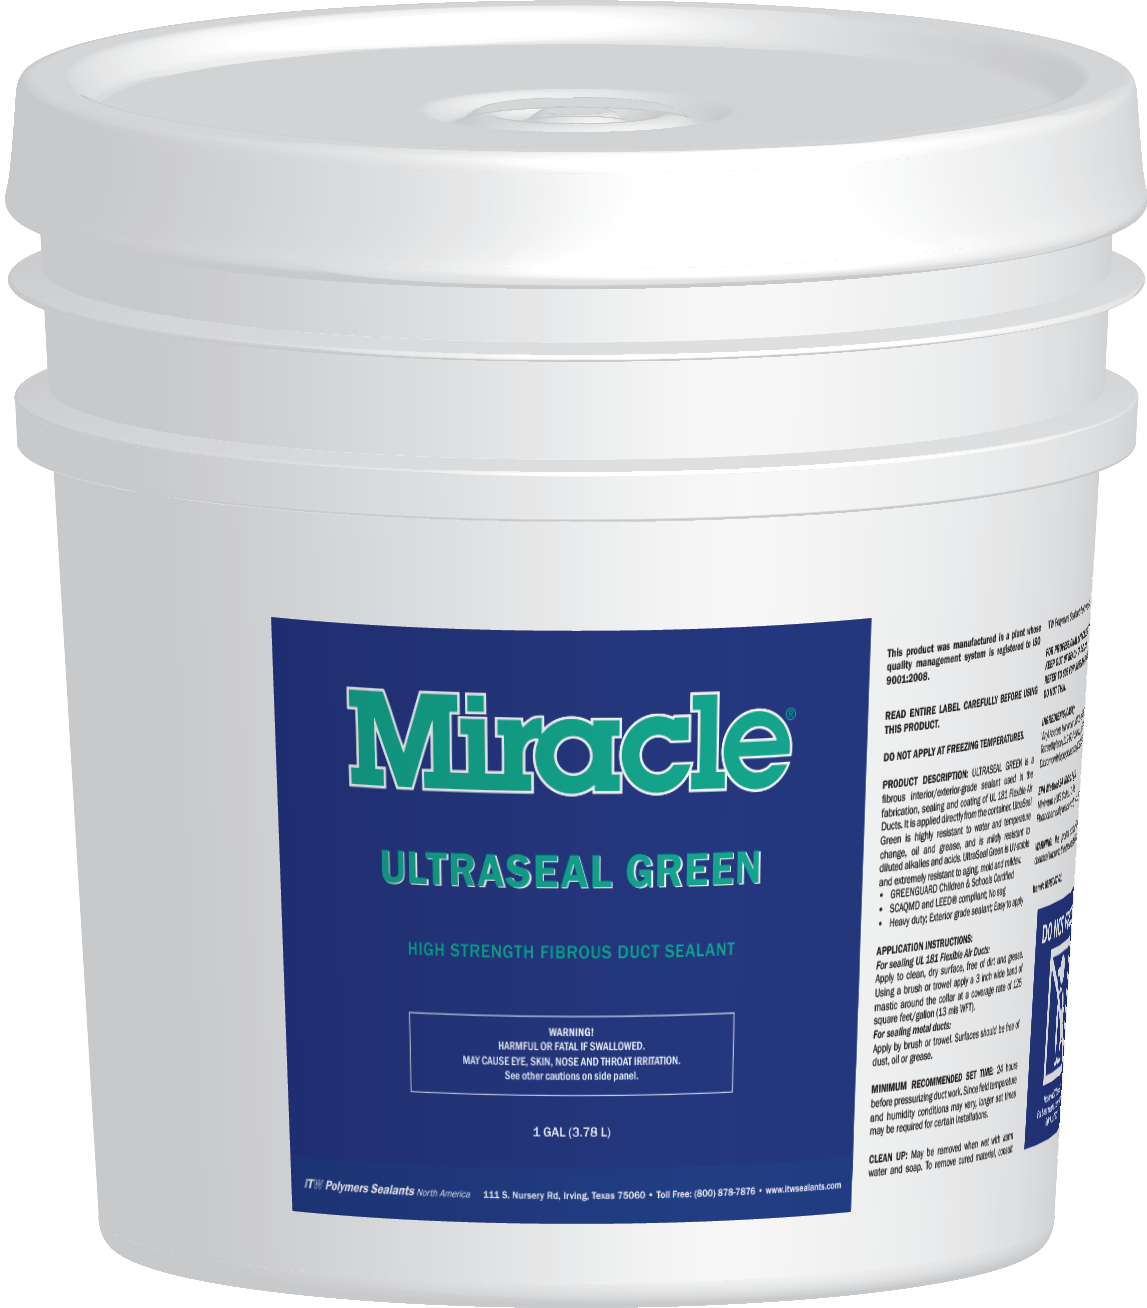 Miracle UltraSeal Green 4g Pail 2016-04-11